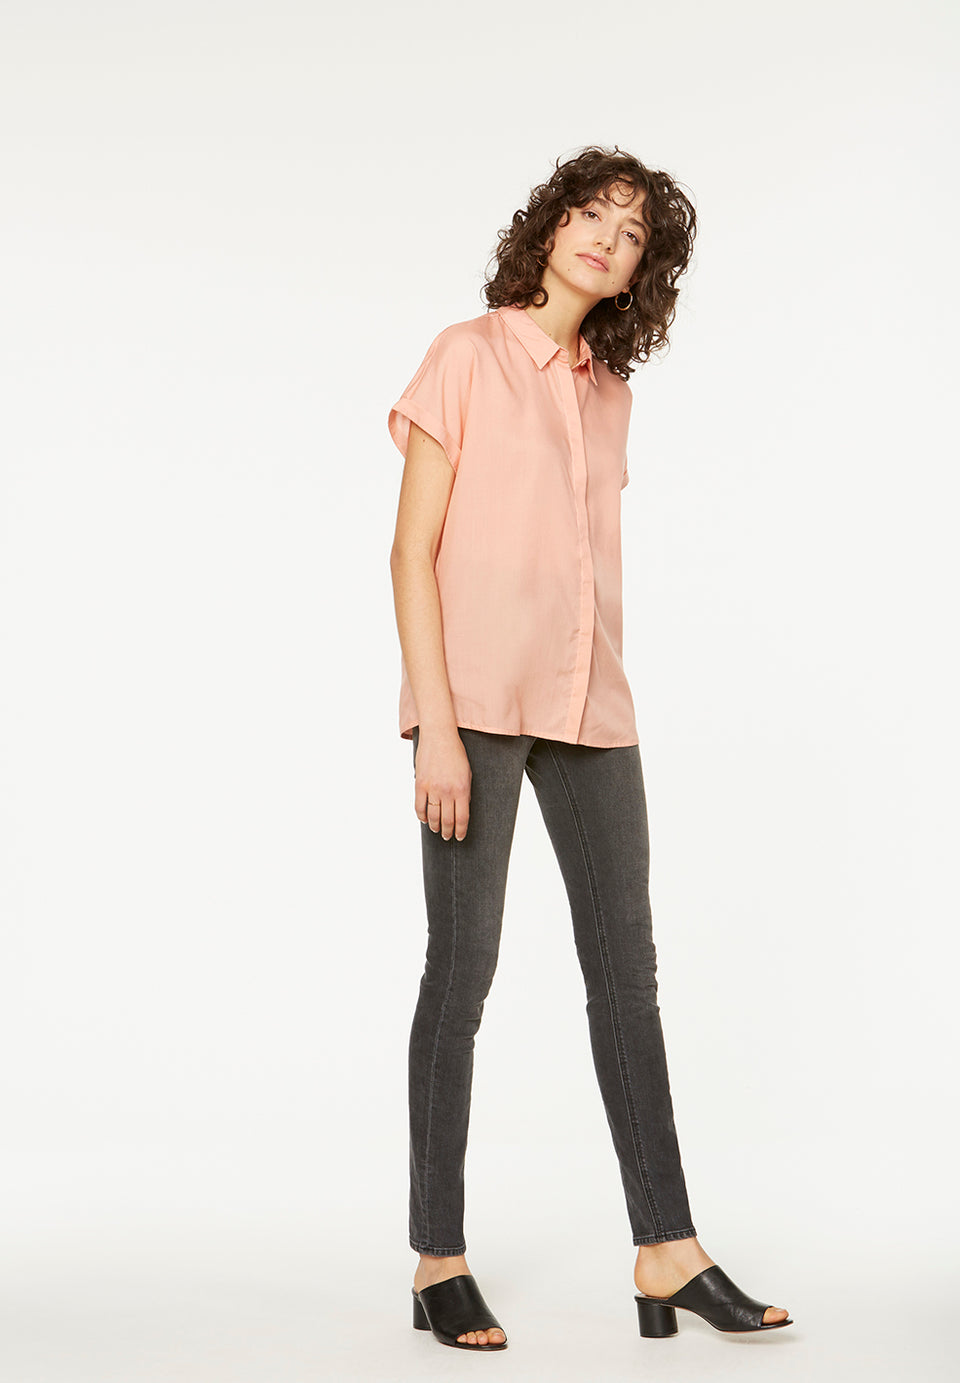 Zonjaa Blouse in Peach